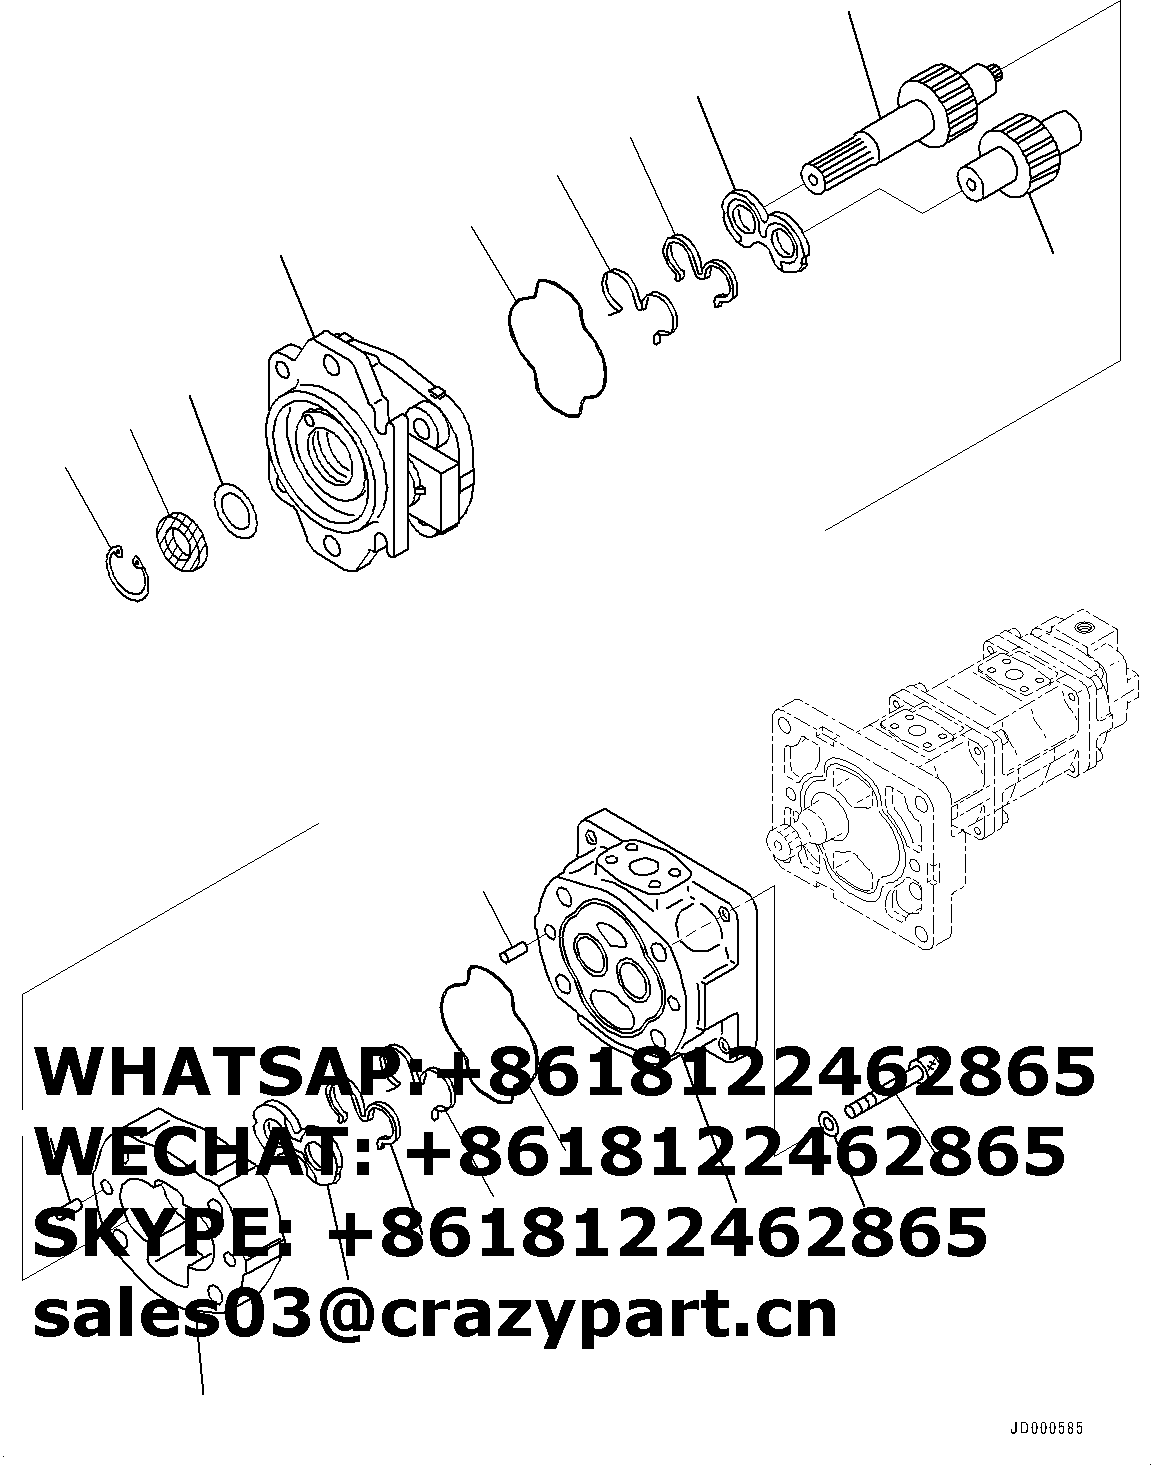 new 705-38-39000 705-56-36051 SAR90+32+SB8+12 hydraulic gear pump WA320-5 WA320-6 loader 4 stage gear pump suitable for KOMATSU